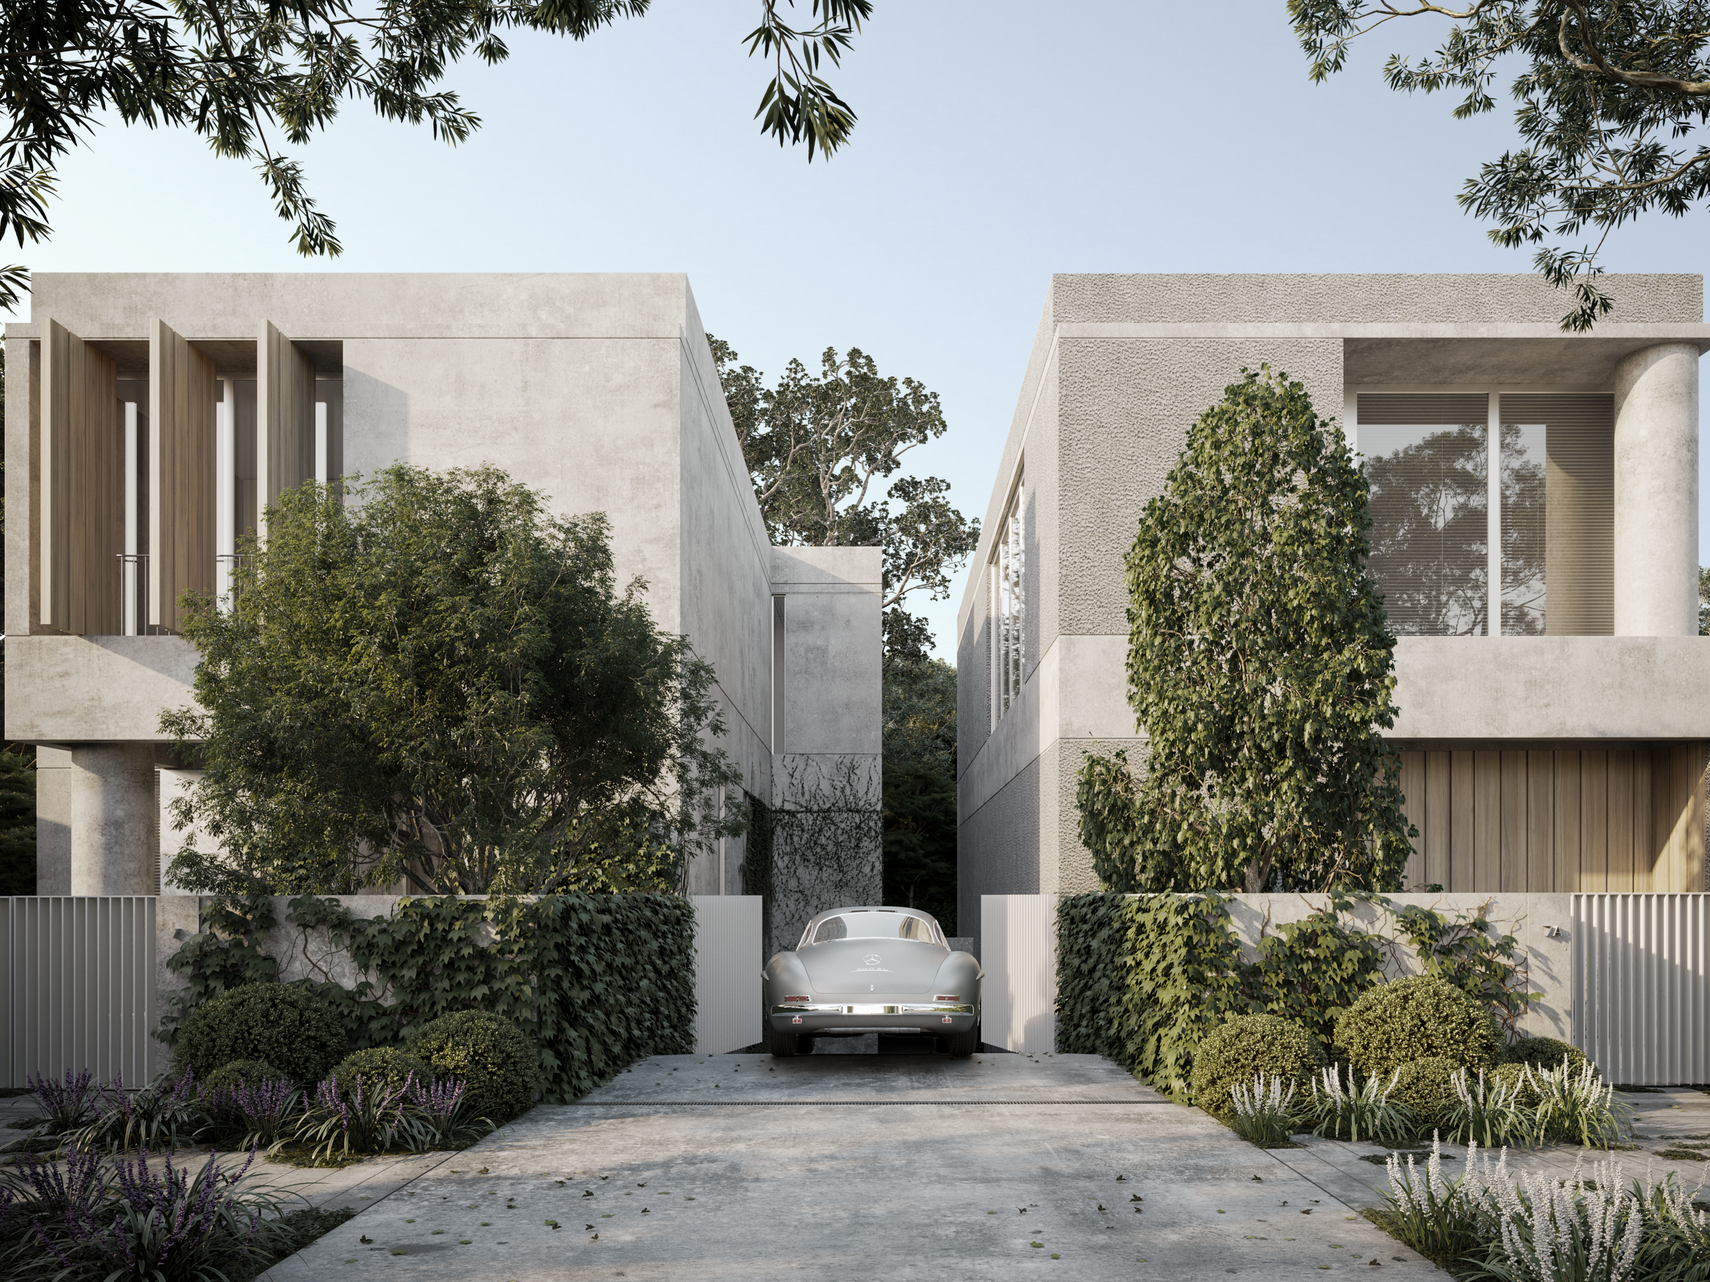 Homes with personalities: The Introvert and The Extrovert   Architecture & Design